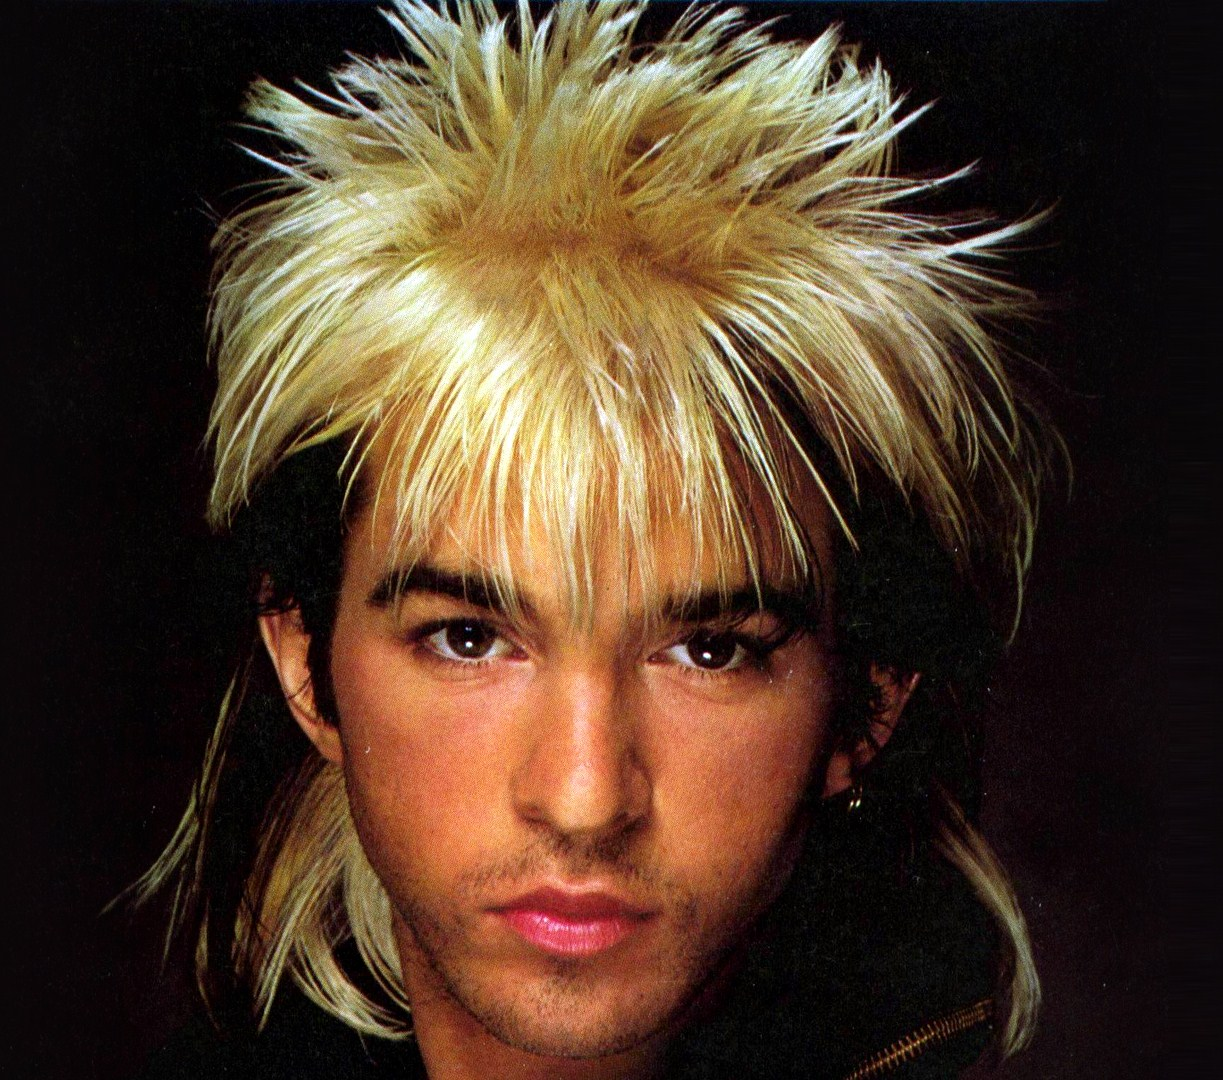 Limahl The NeverEnding Story Nouveau Mixage US